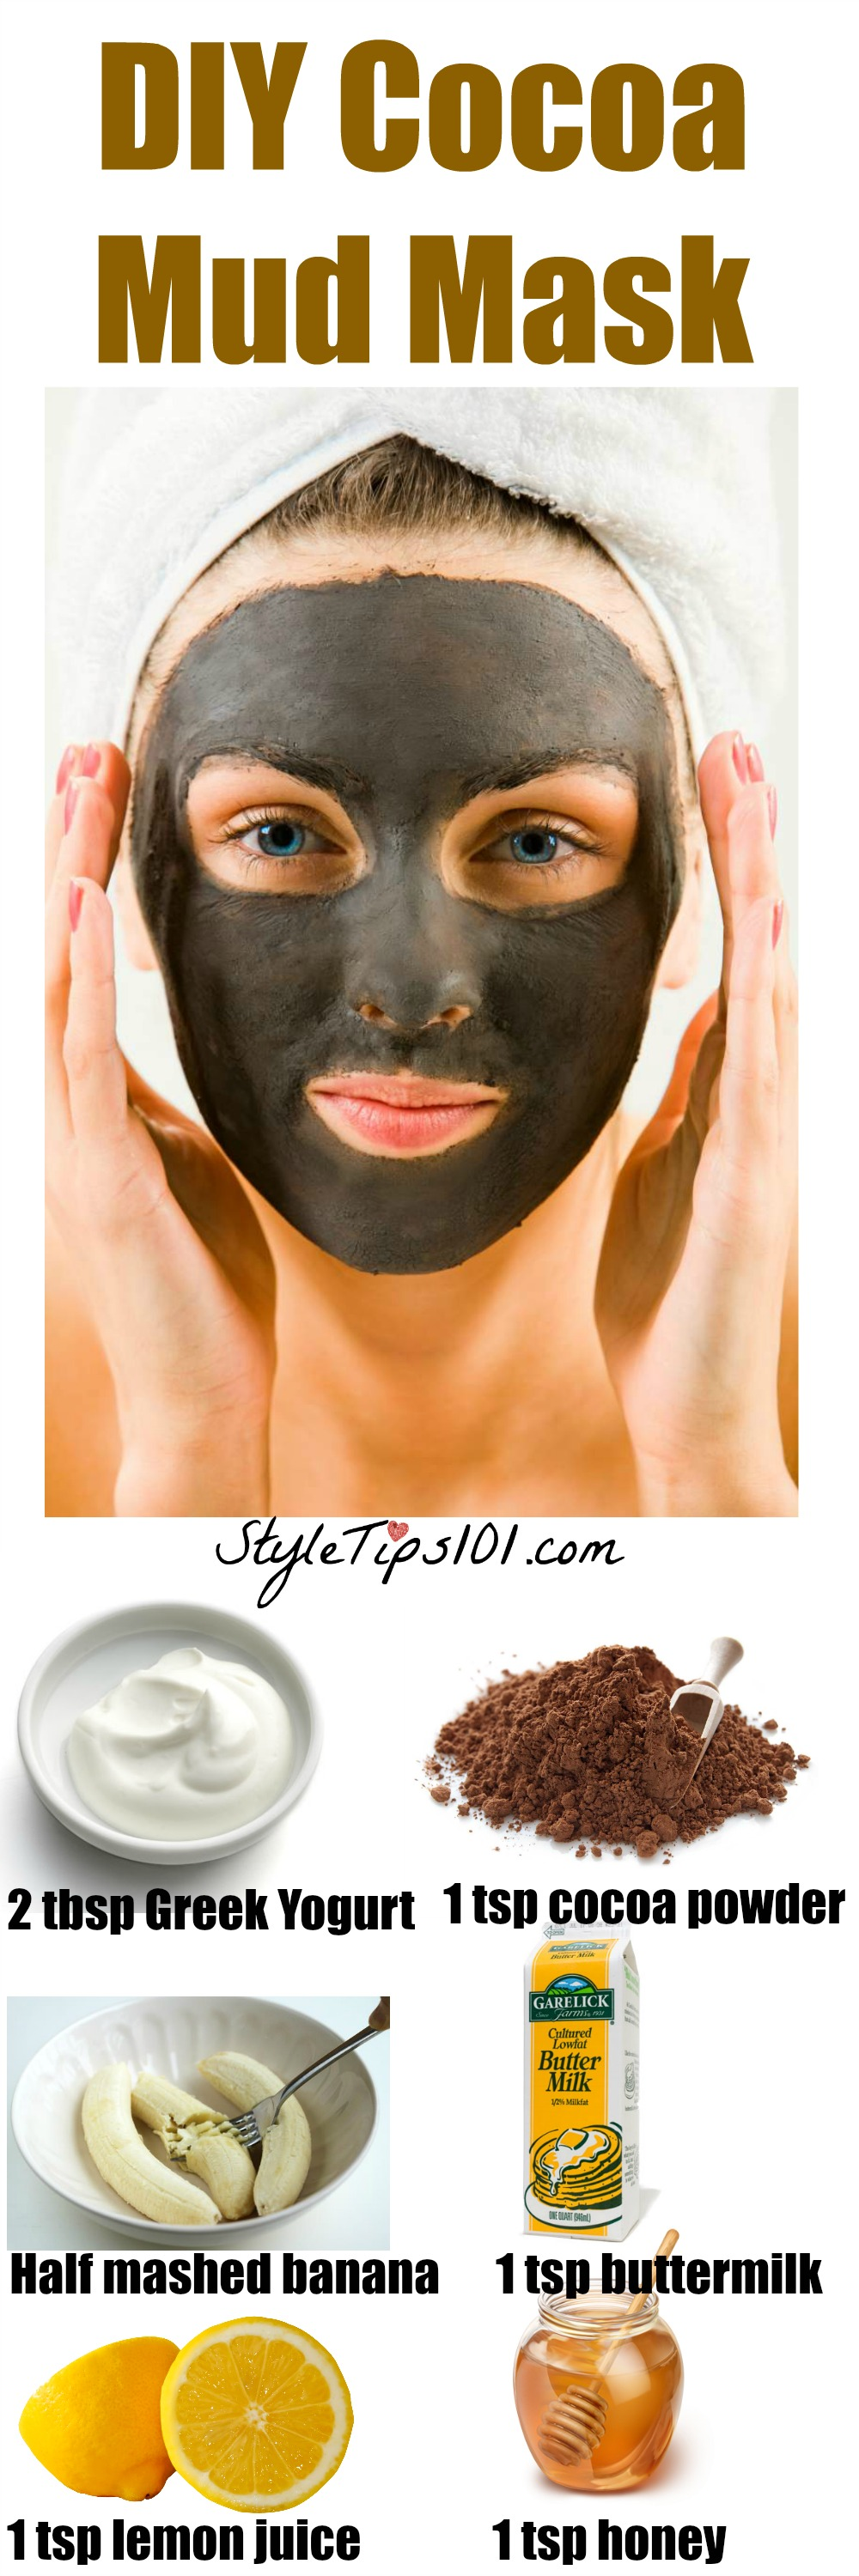 Diy Mud Mask For Acne Prone And Oily Skin